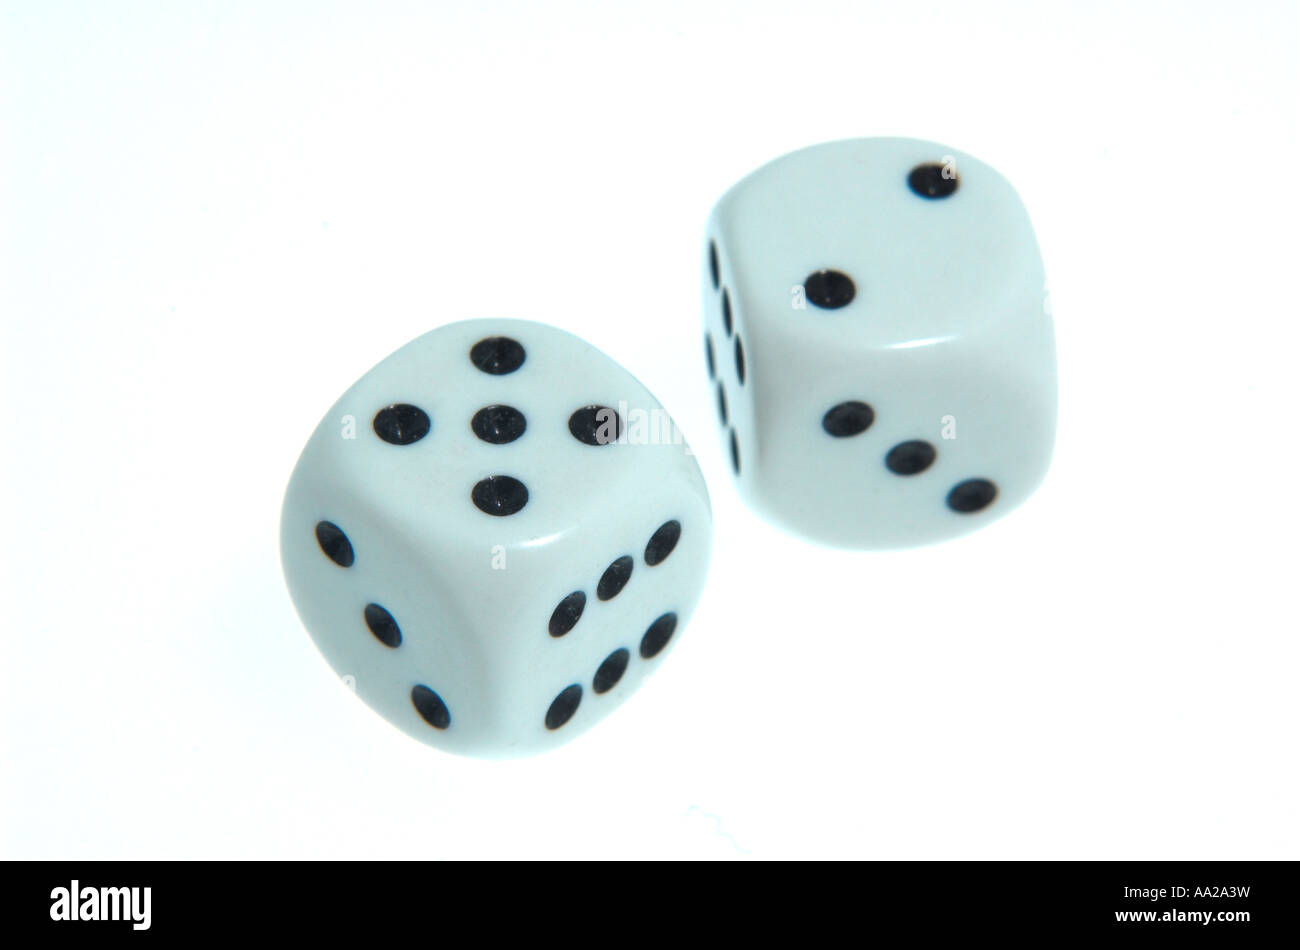 pair of white dice showing combo of numbers equal to seven - Stock Image